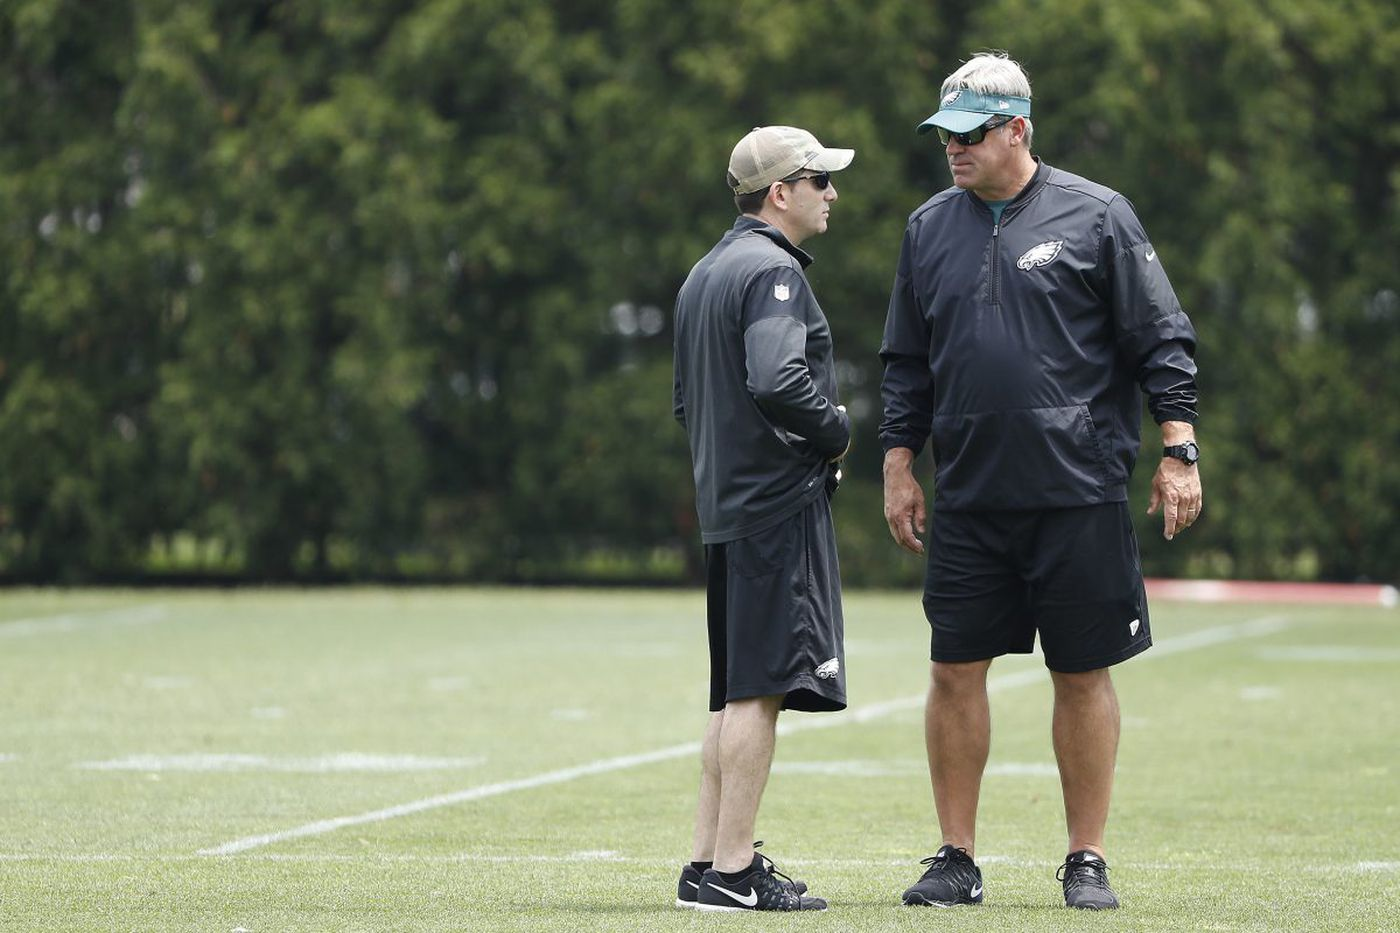 Eagles nip and tuck, but don't slice into plan to win right away | Bob Ford